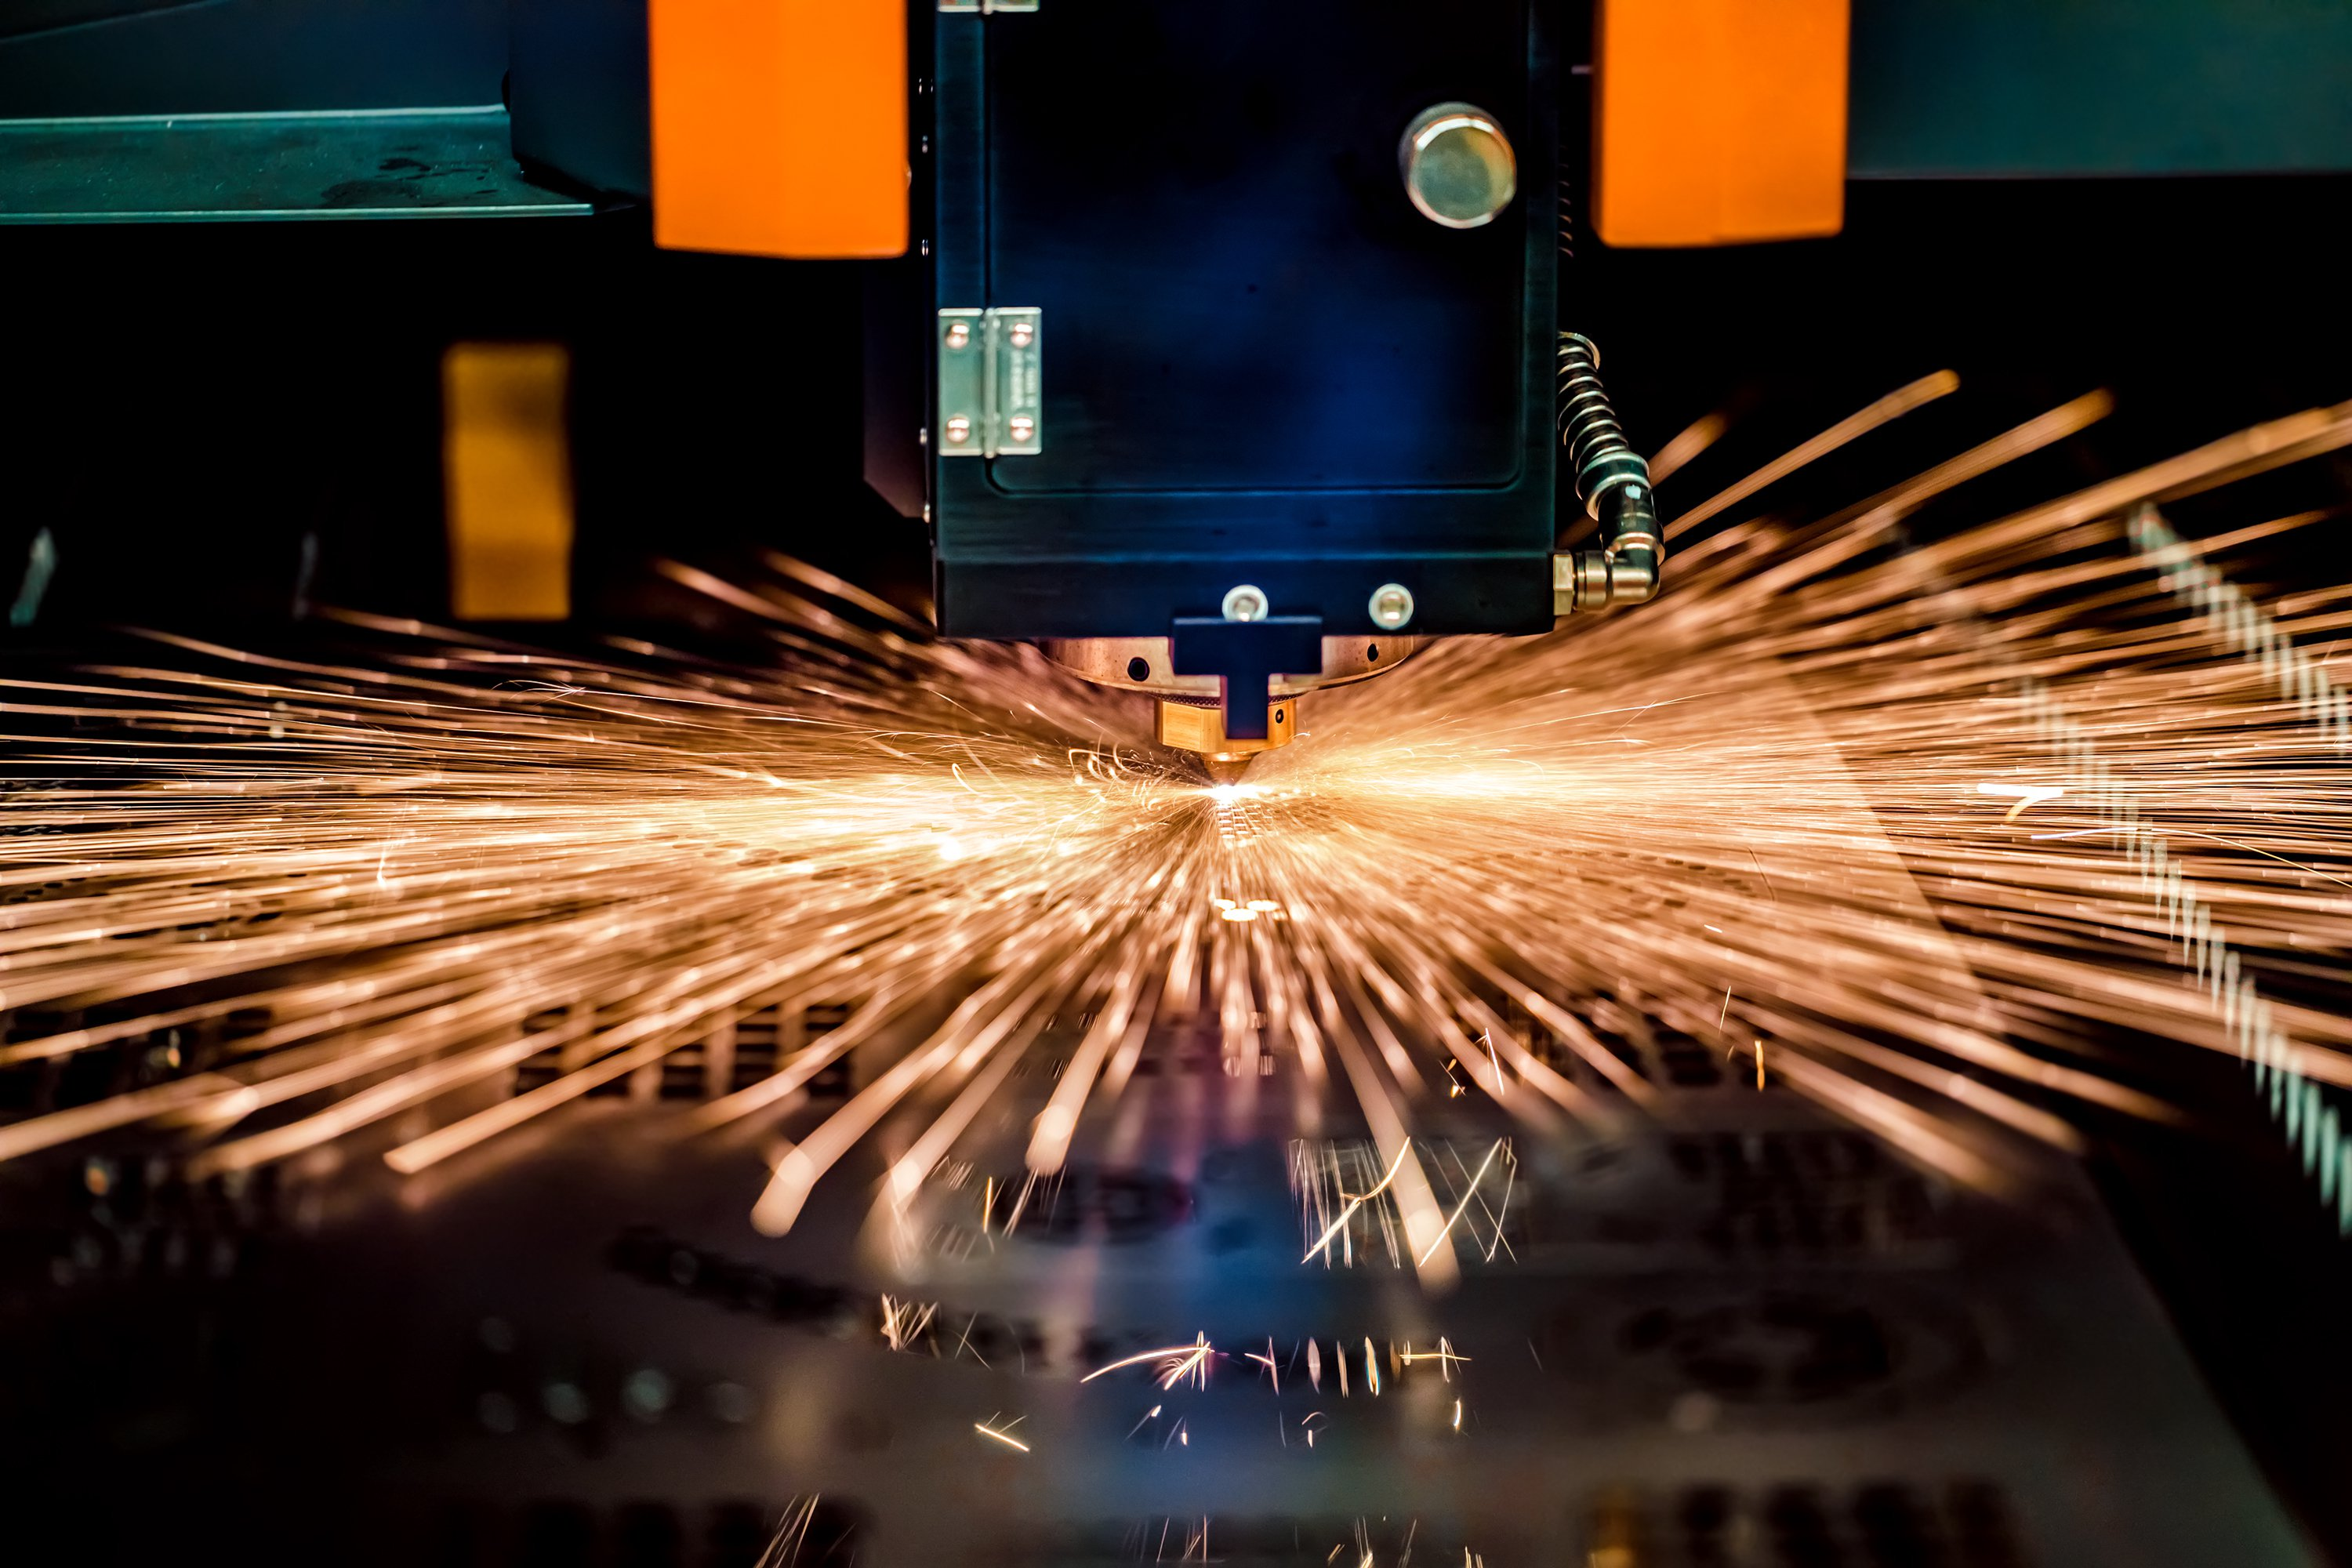 cnc-laser-cutting-of-metal-modern-industrial-PTWGBQY.jpg